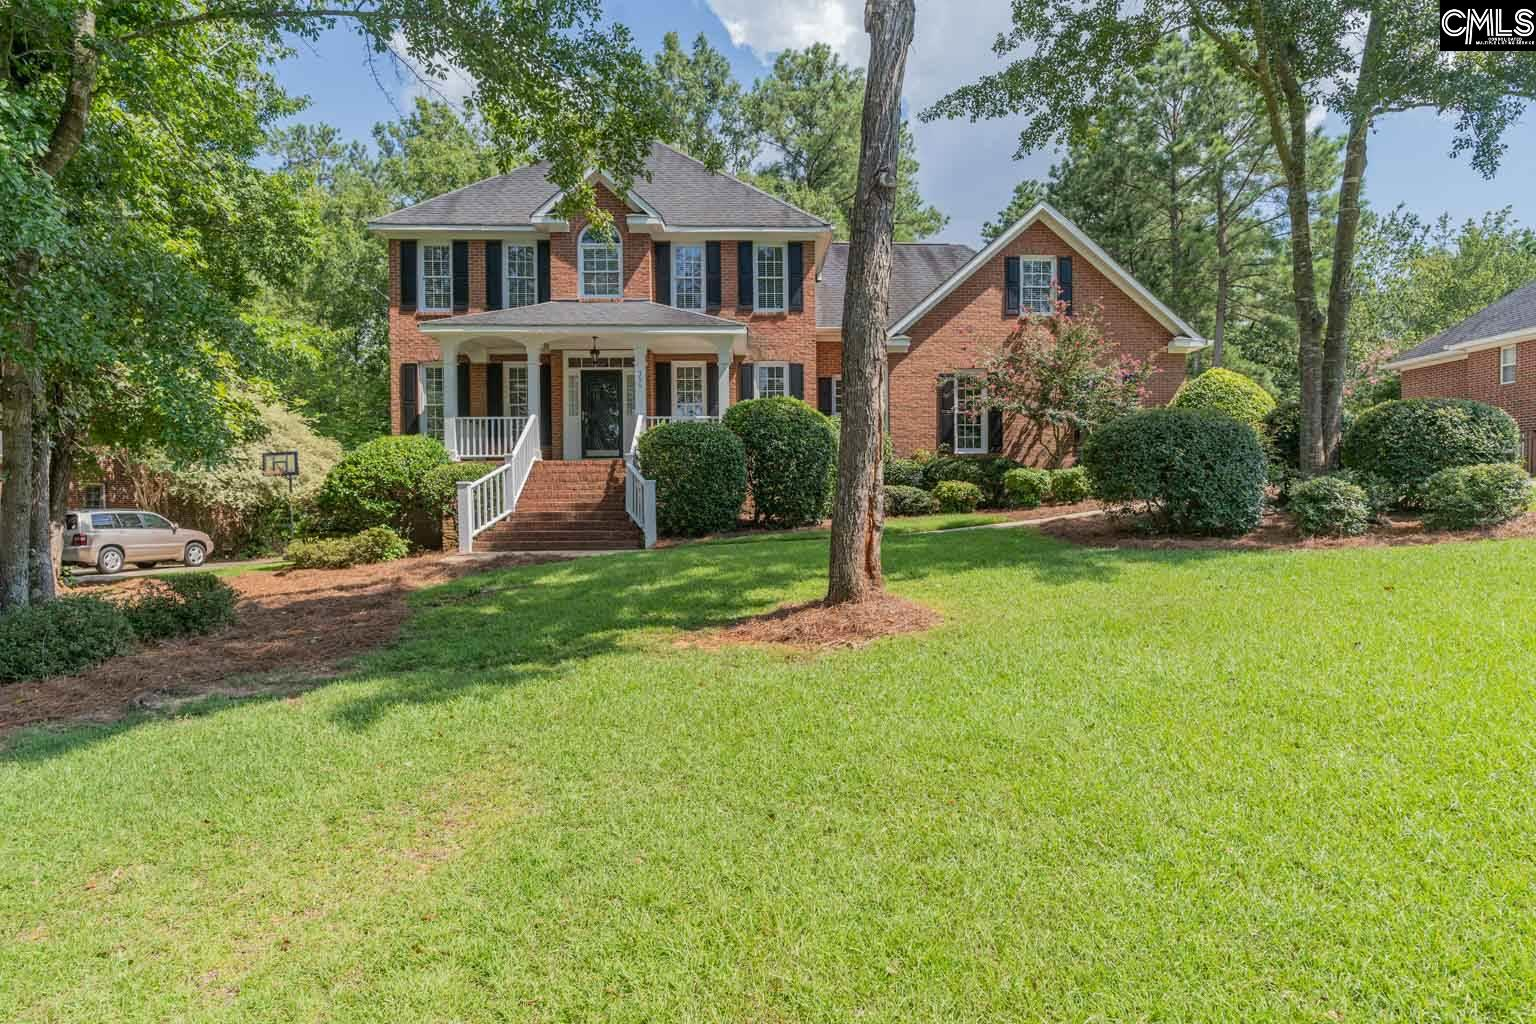 356 Governors Grant Lexington, SC 29072